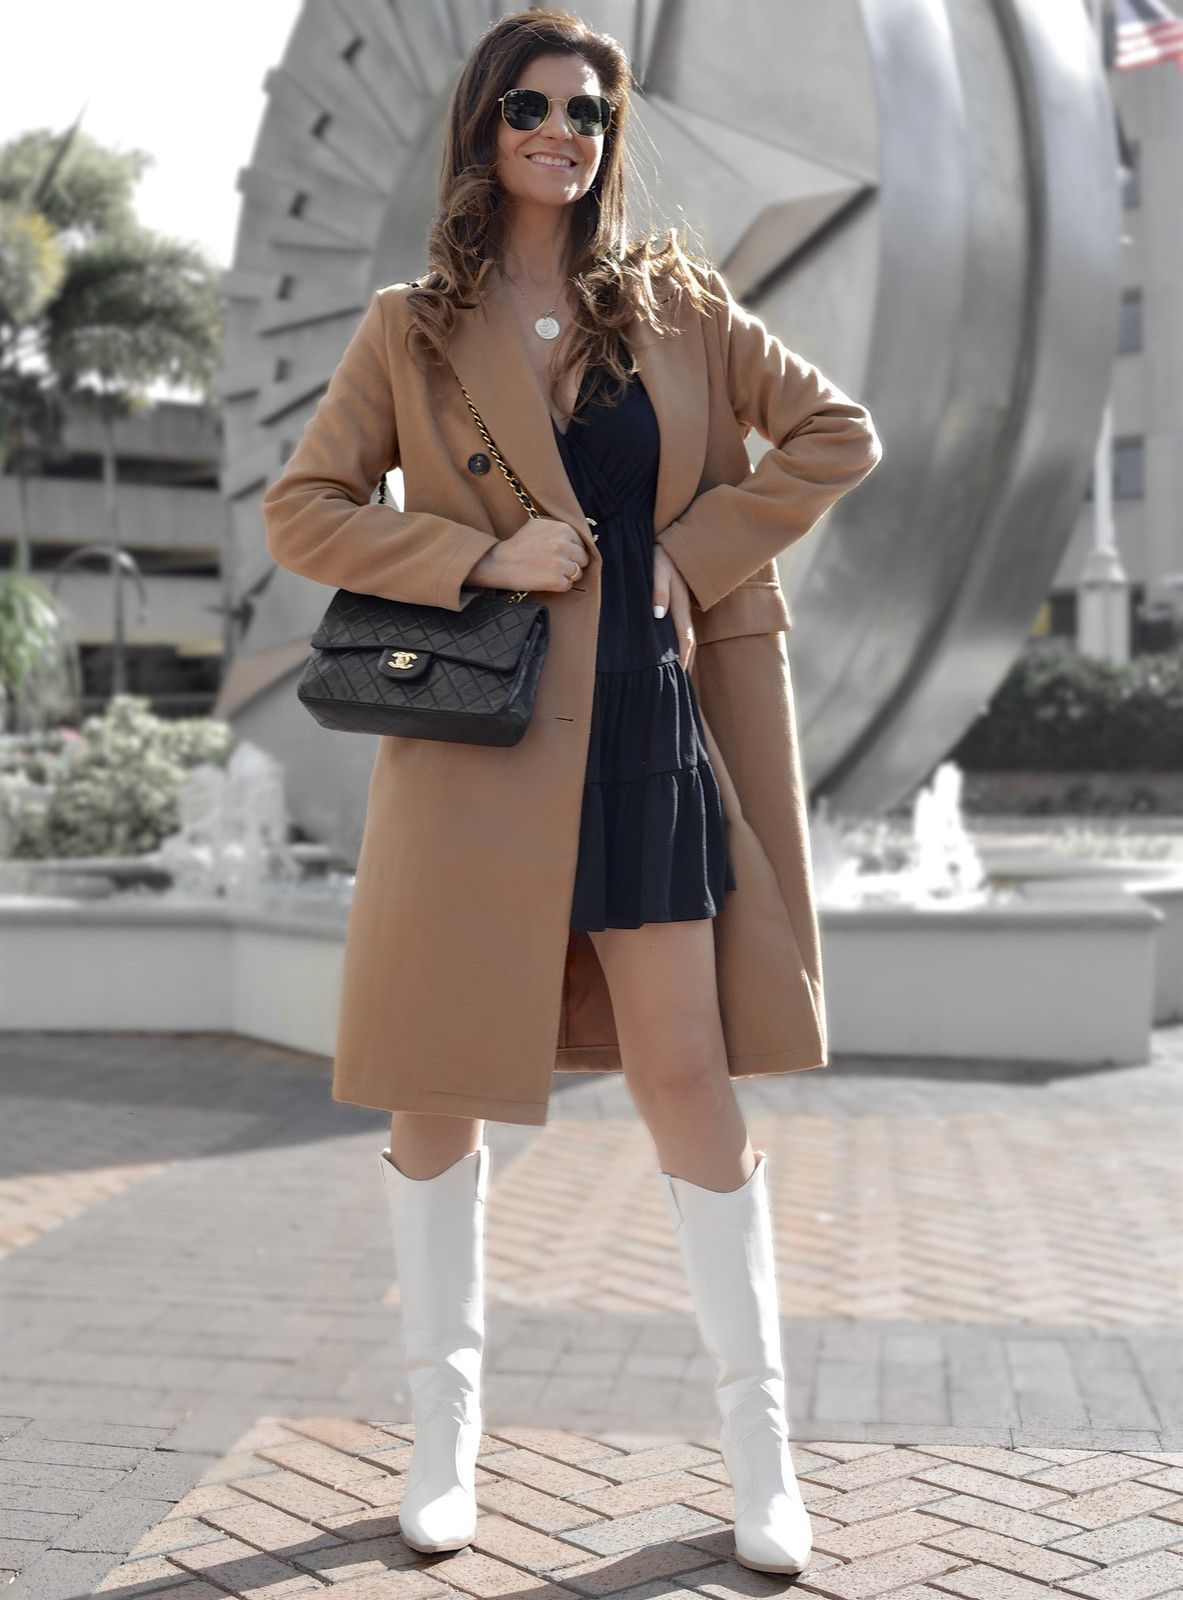 A camel coat and black dress for February